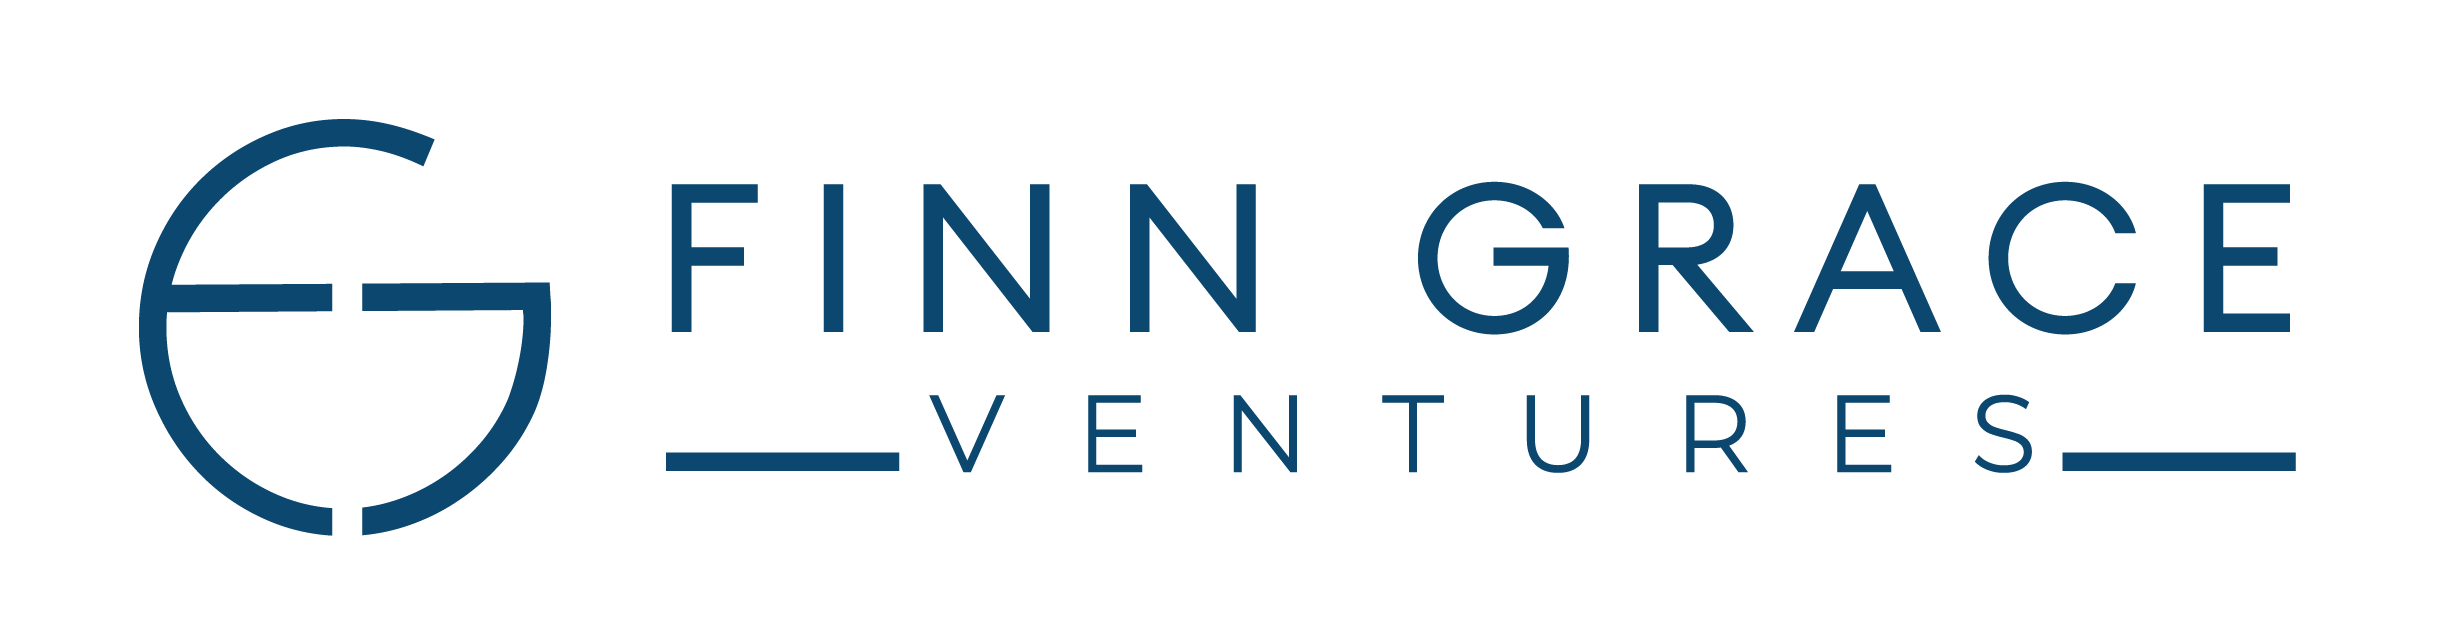 Finn Grace Ventures | Invest in Disruptive Startup